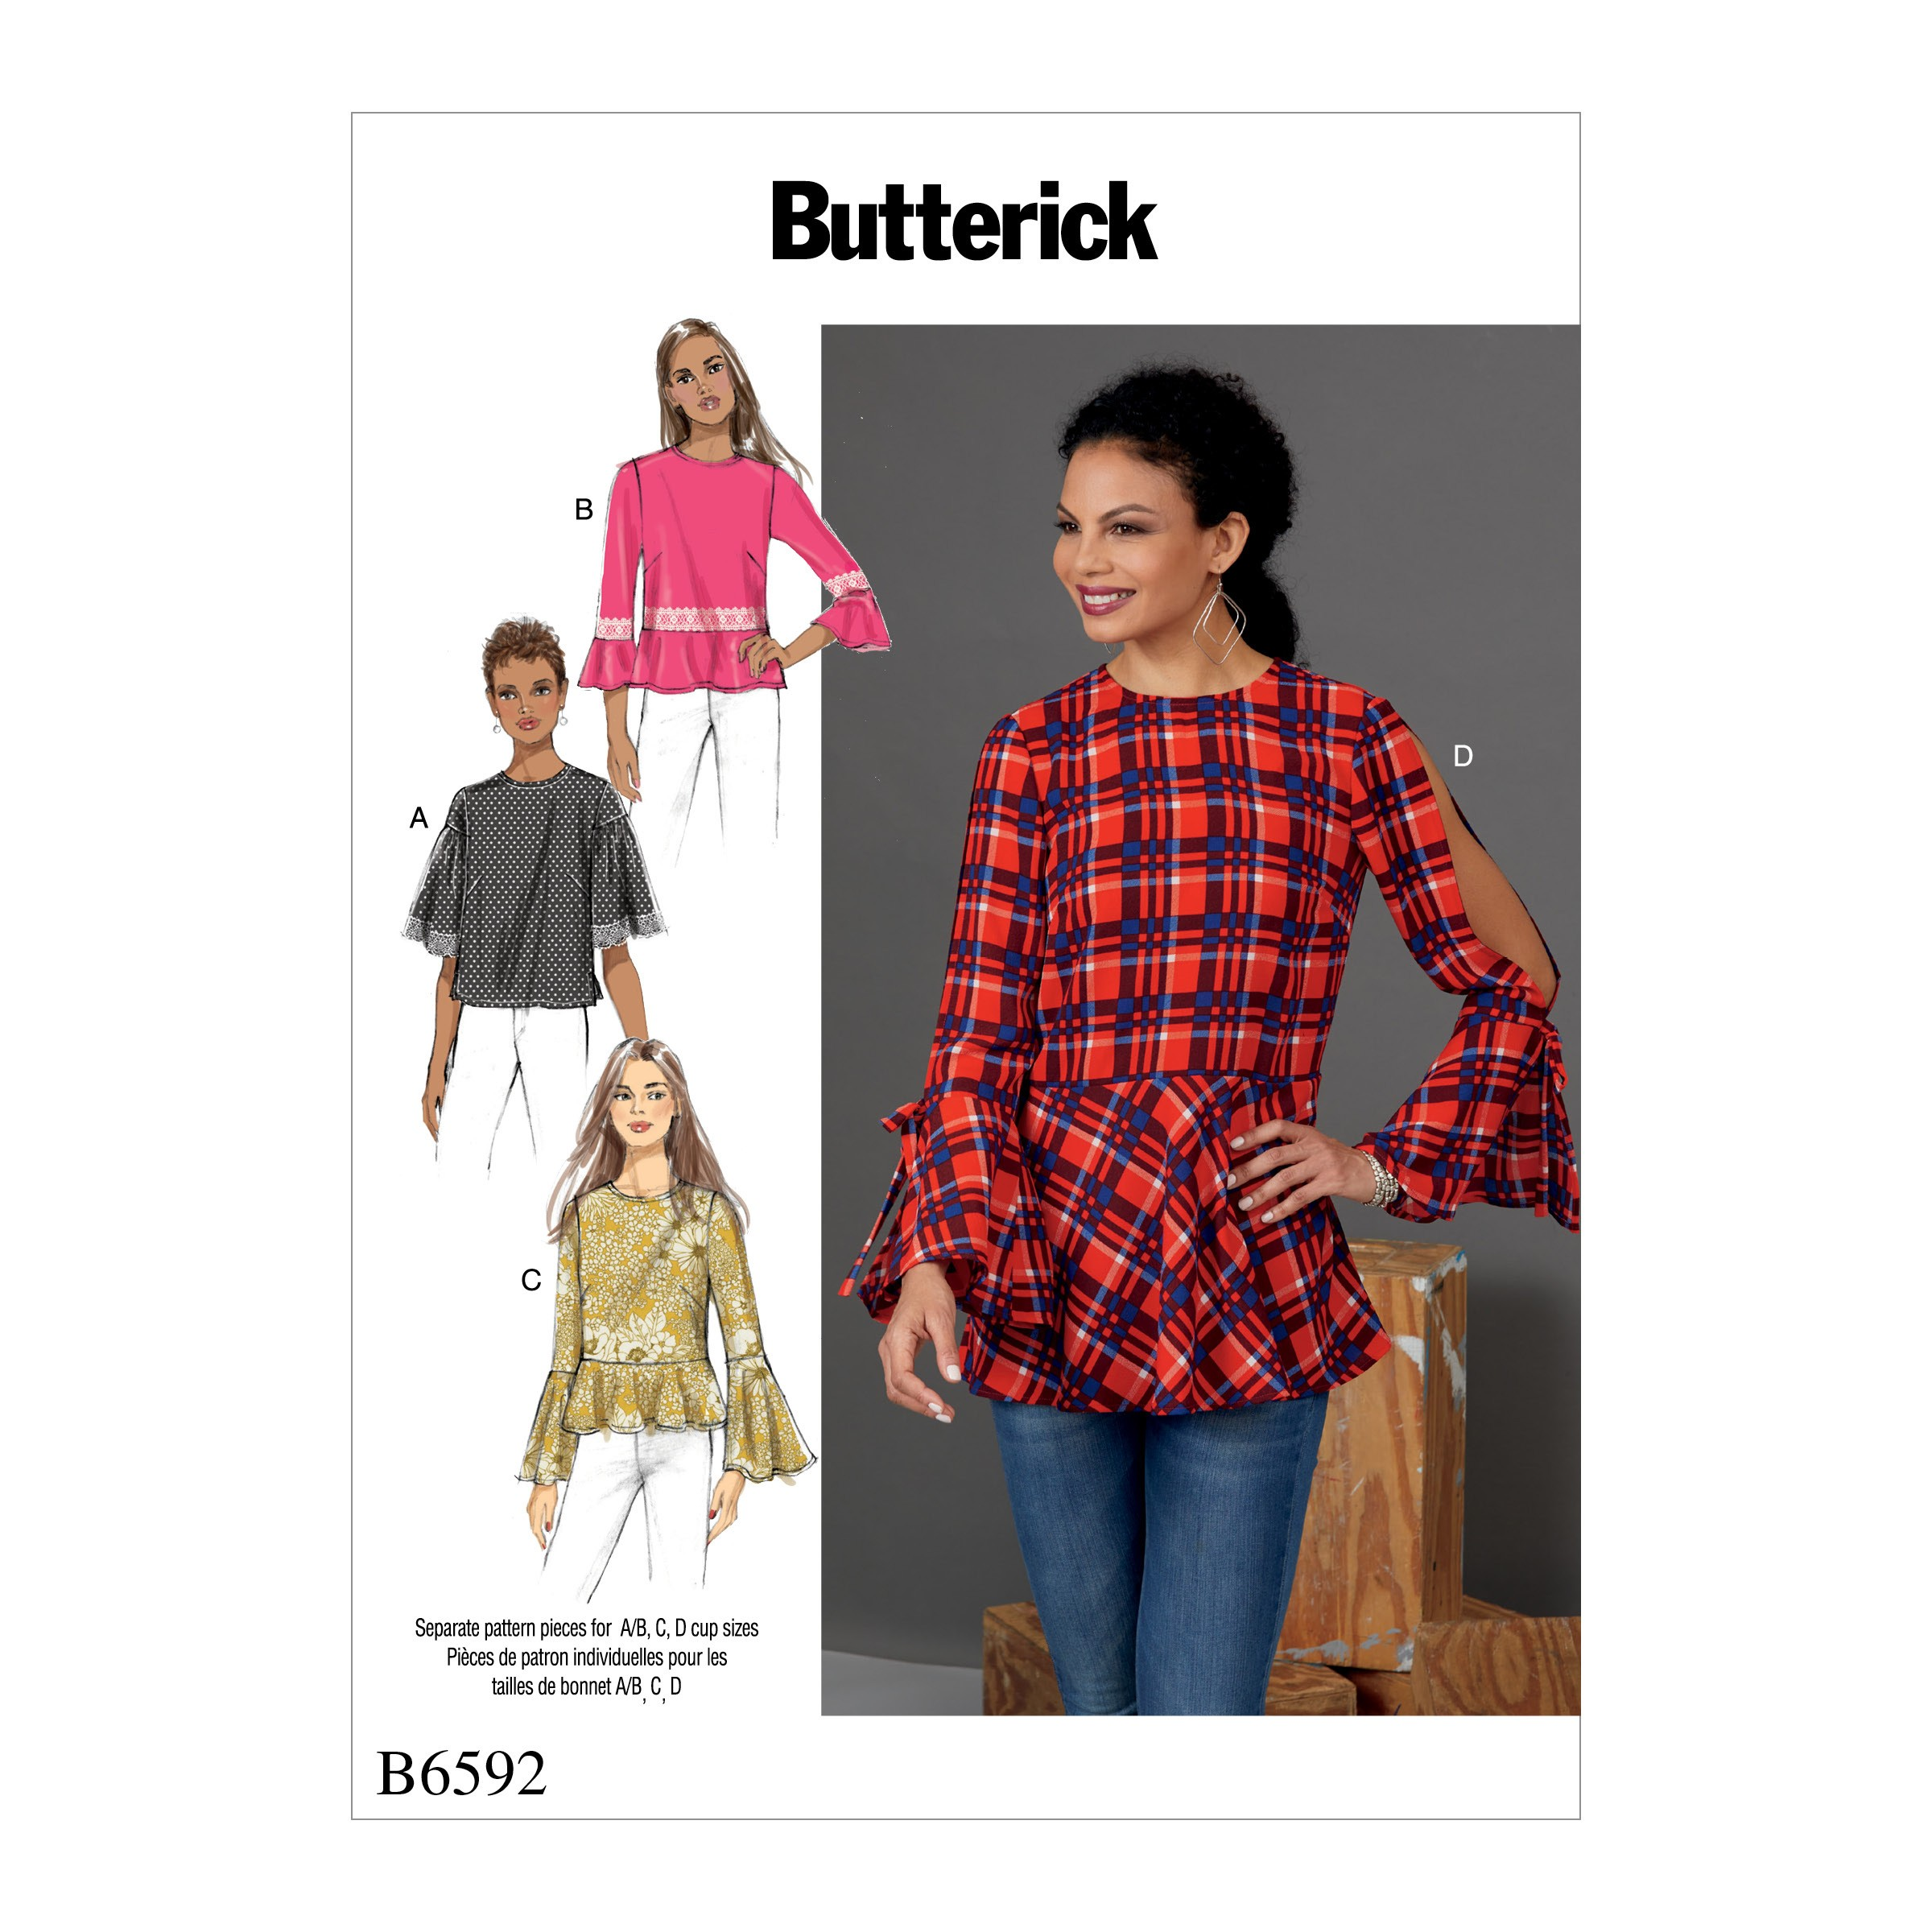 Butterick Sewing Pattern 6592 Misses' Tops with Flared Sleeve Variations